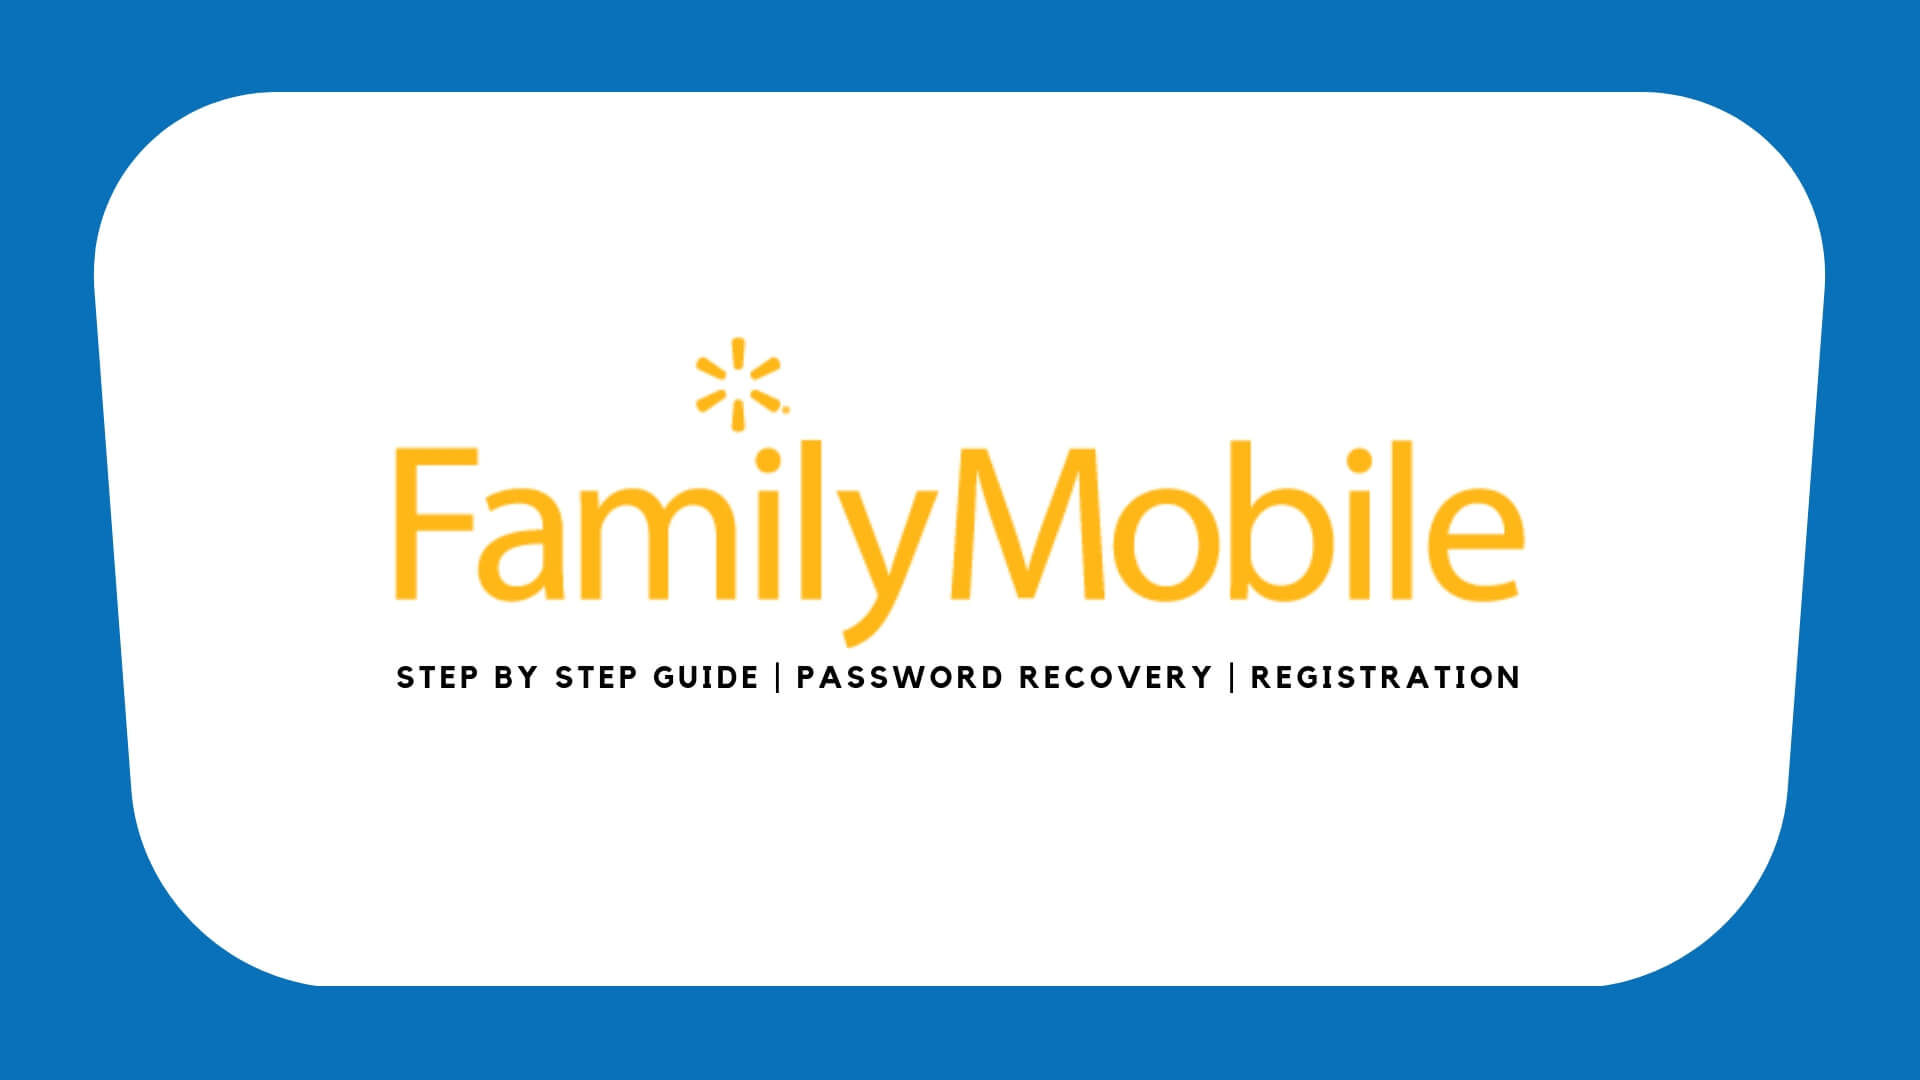 Myfamilymobile Login: Walmart Family Mobile Sign In, Activation, Plans At www.myfamilymobile.com